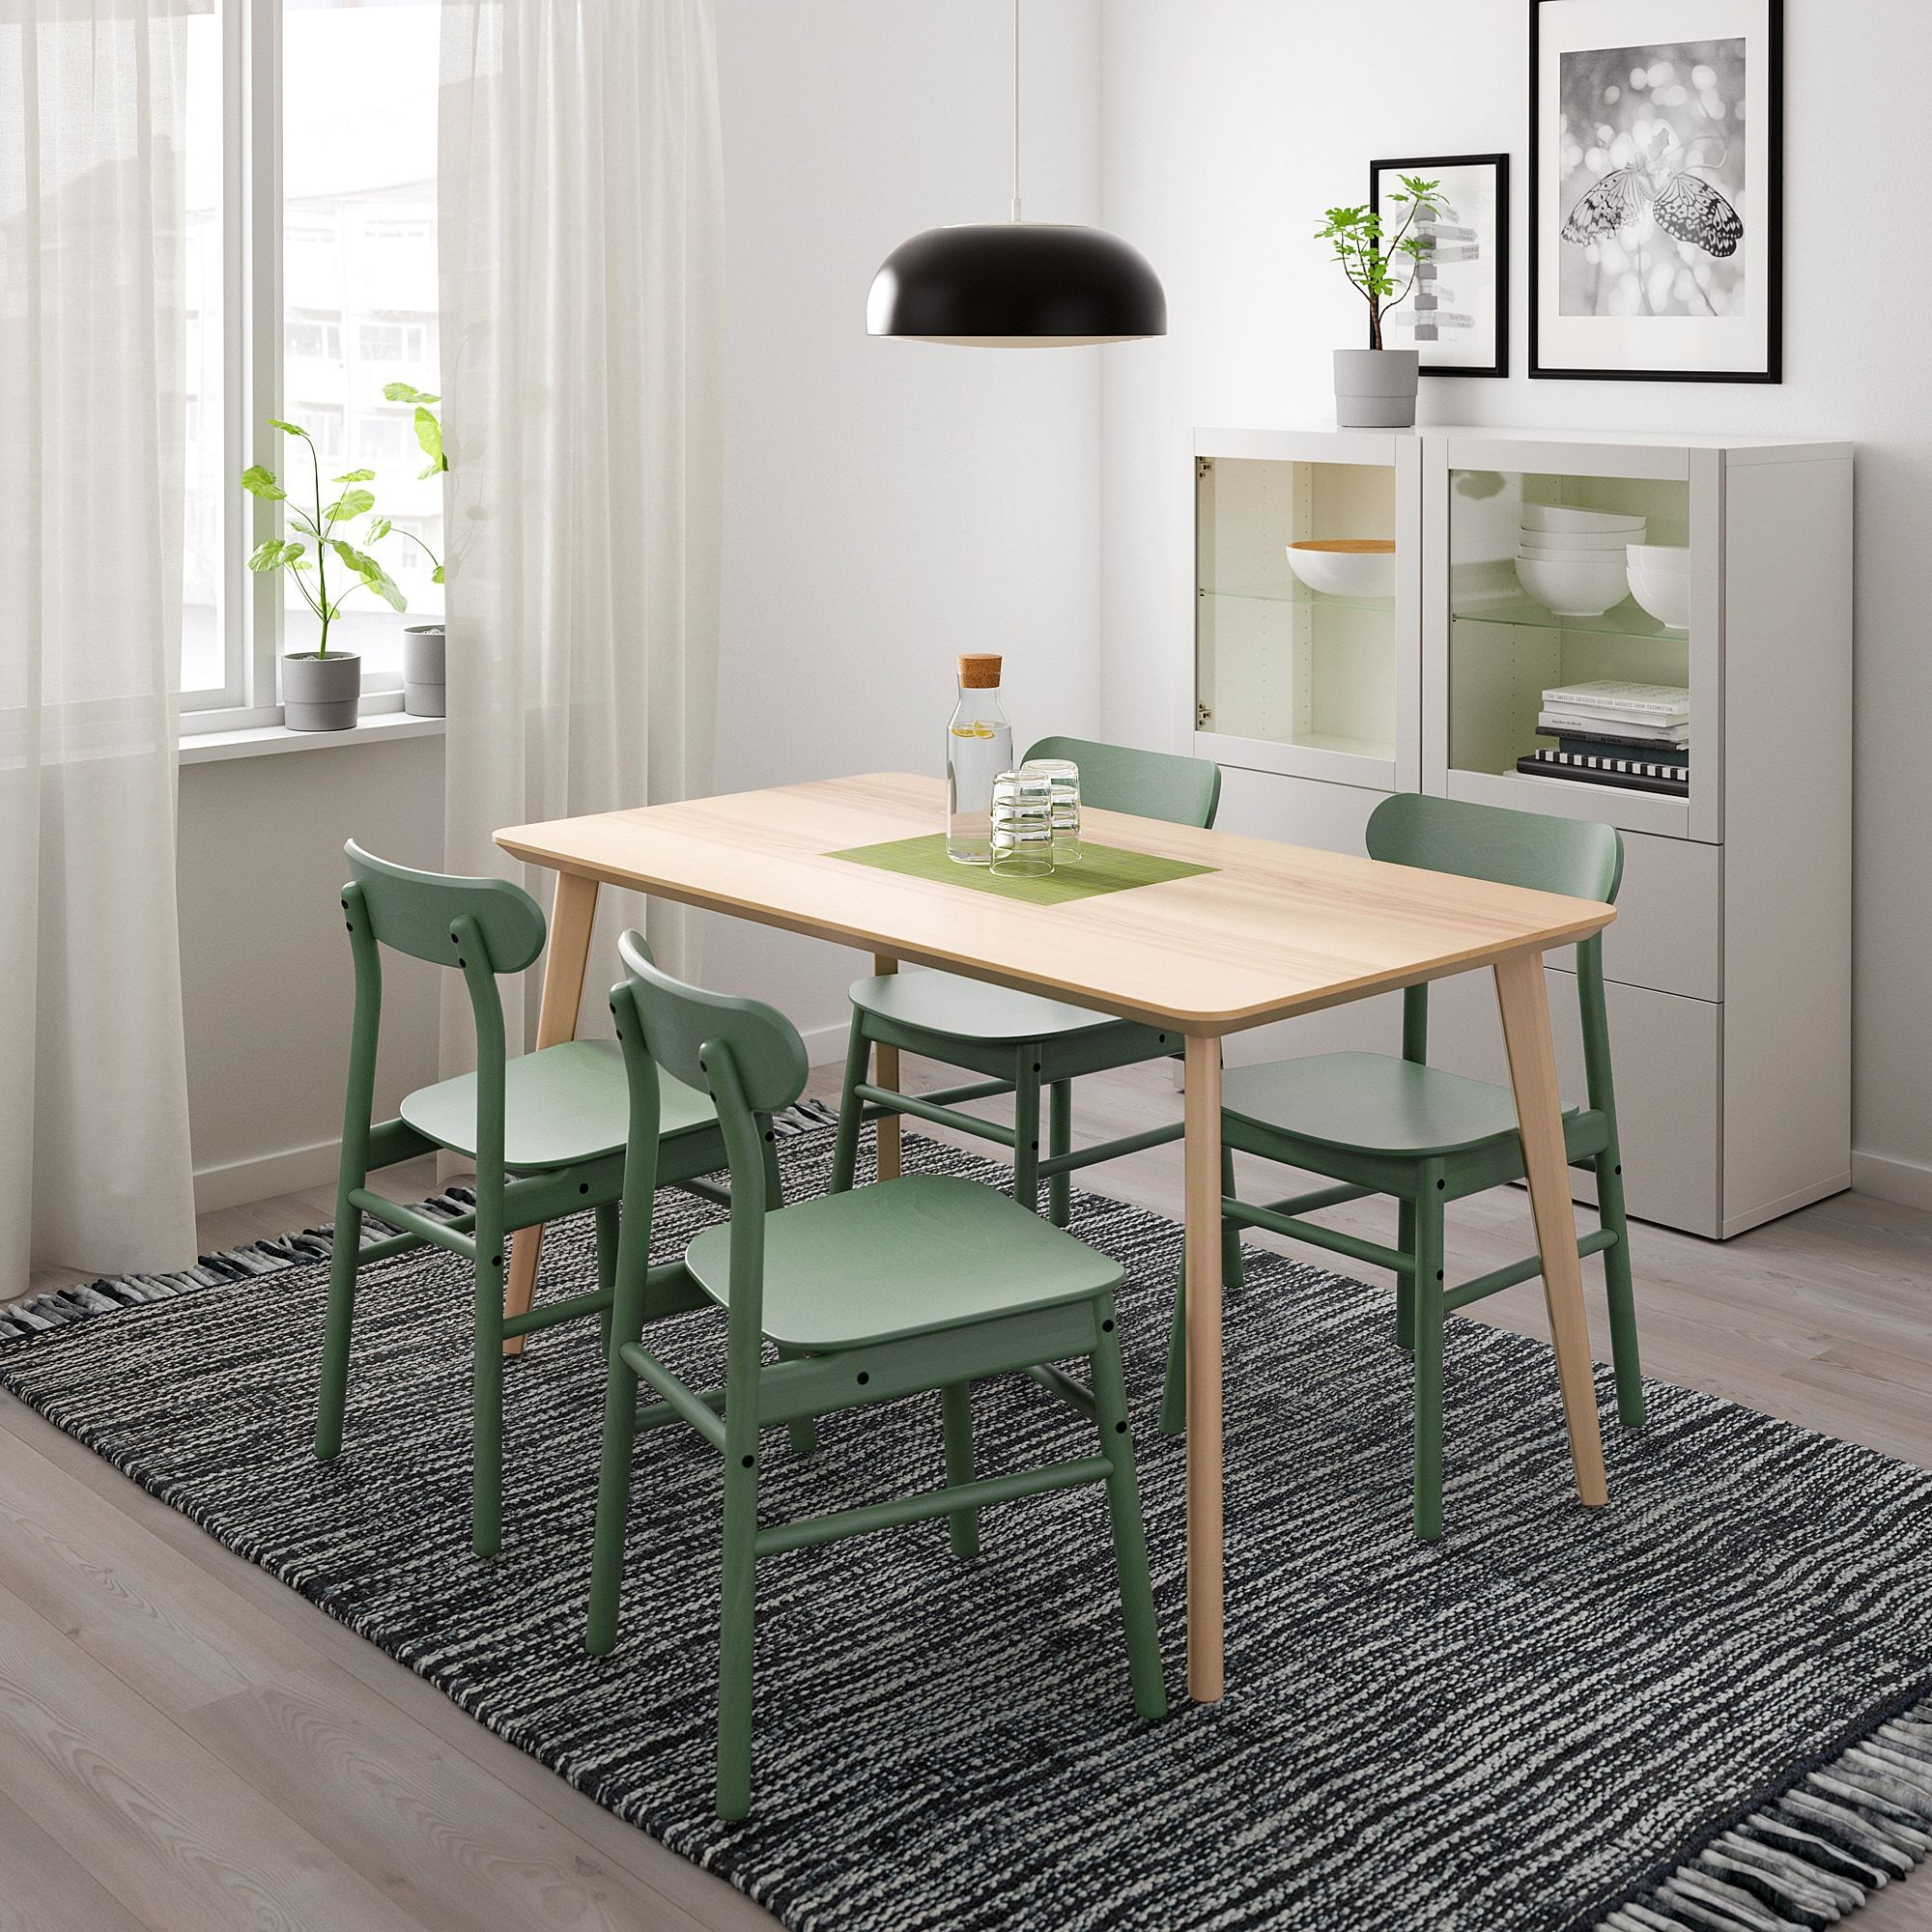 Lisabo Ronninge Table And 4 Chairs Ash Veneer Green Ikea In 2021 Ikea Table And Chairs Ikea Dining Table Ikea Dining [ 2000 x 2000 Pixel ]